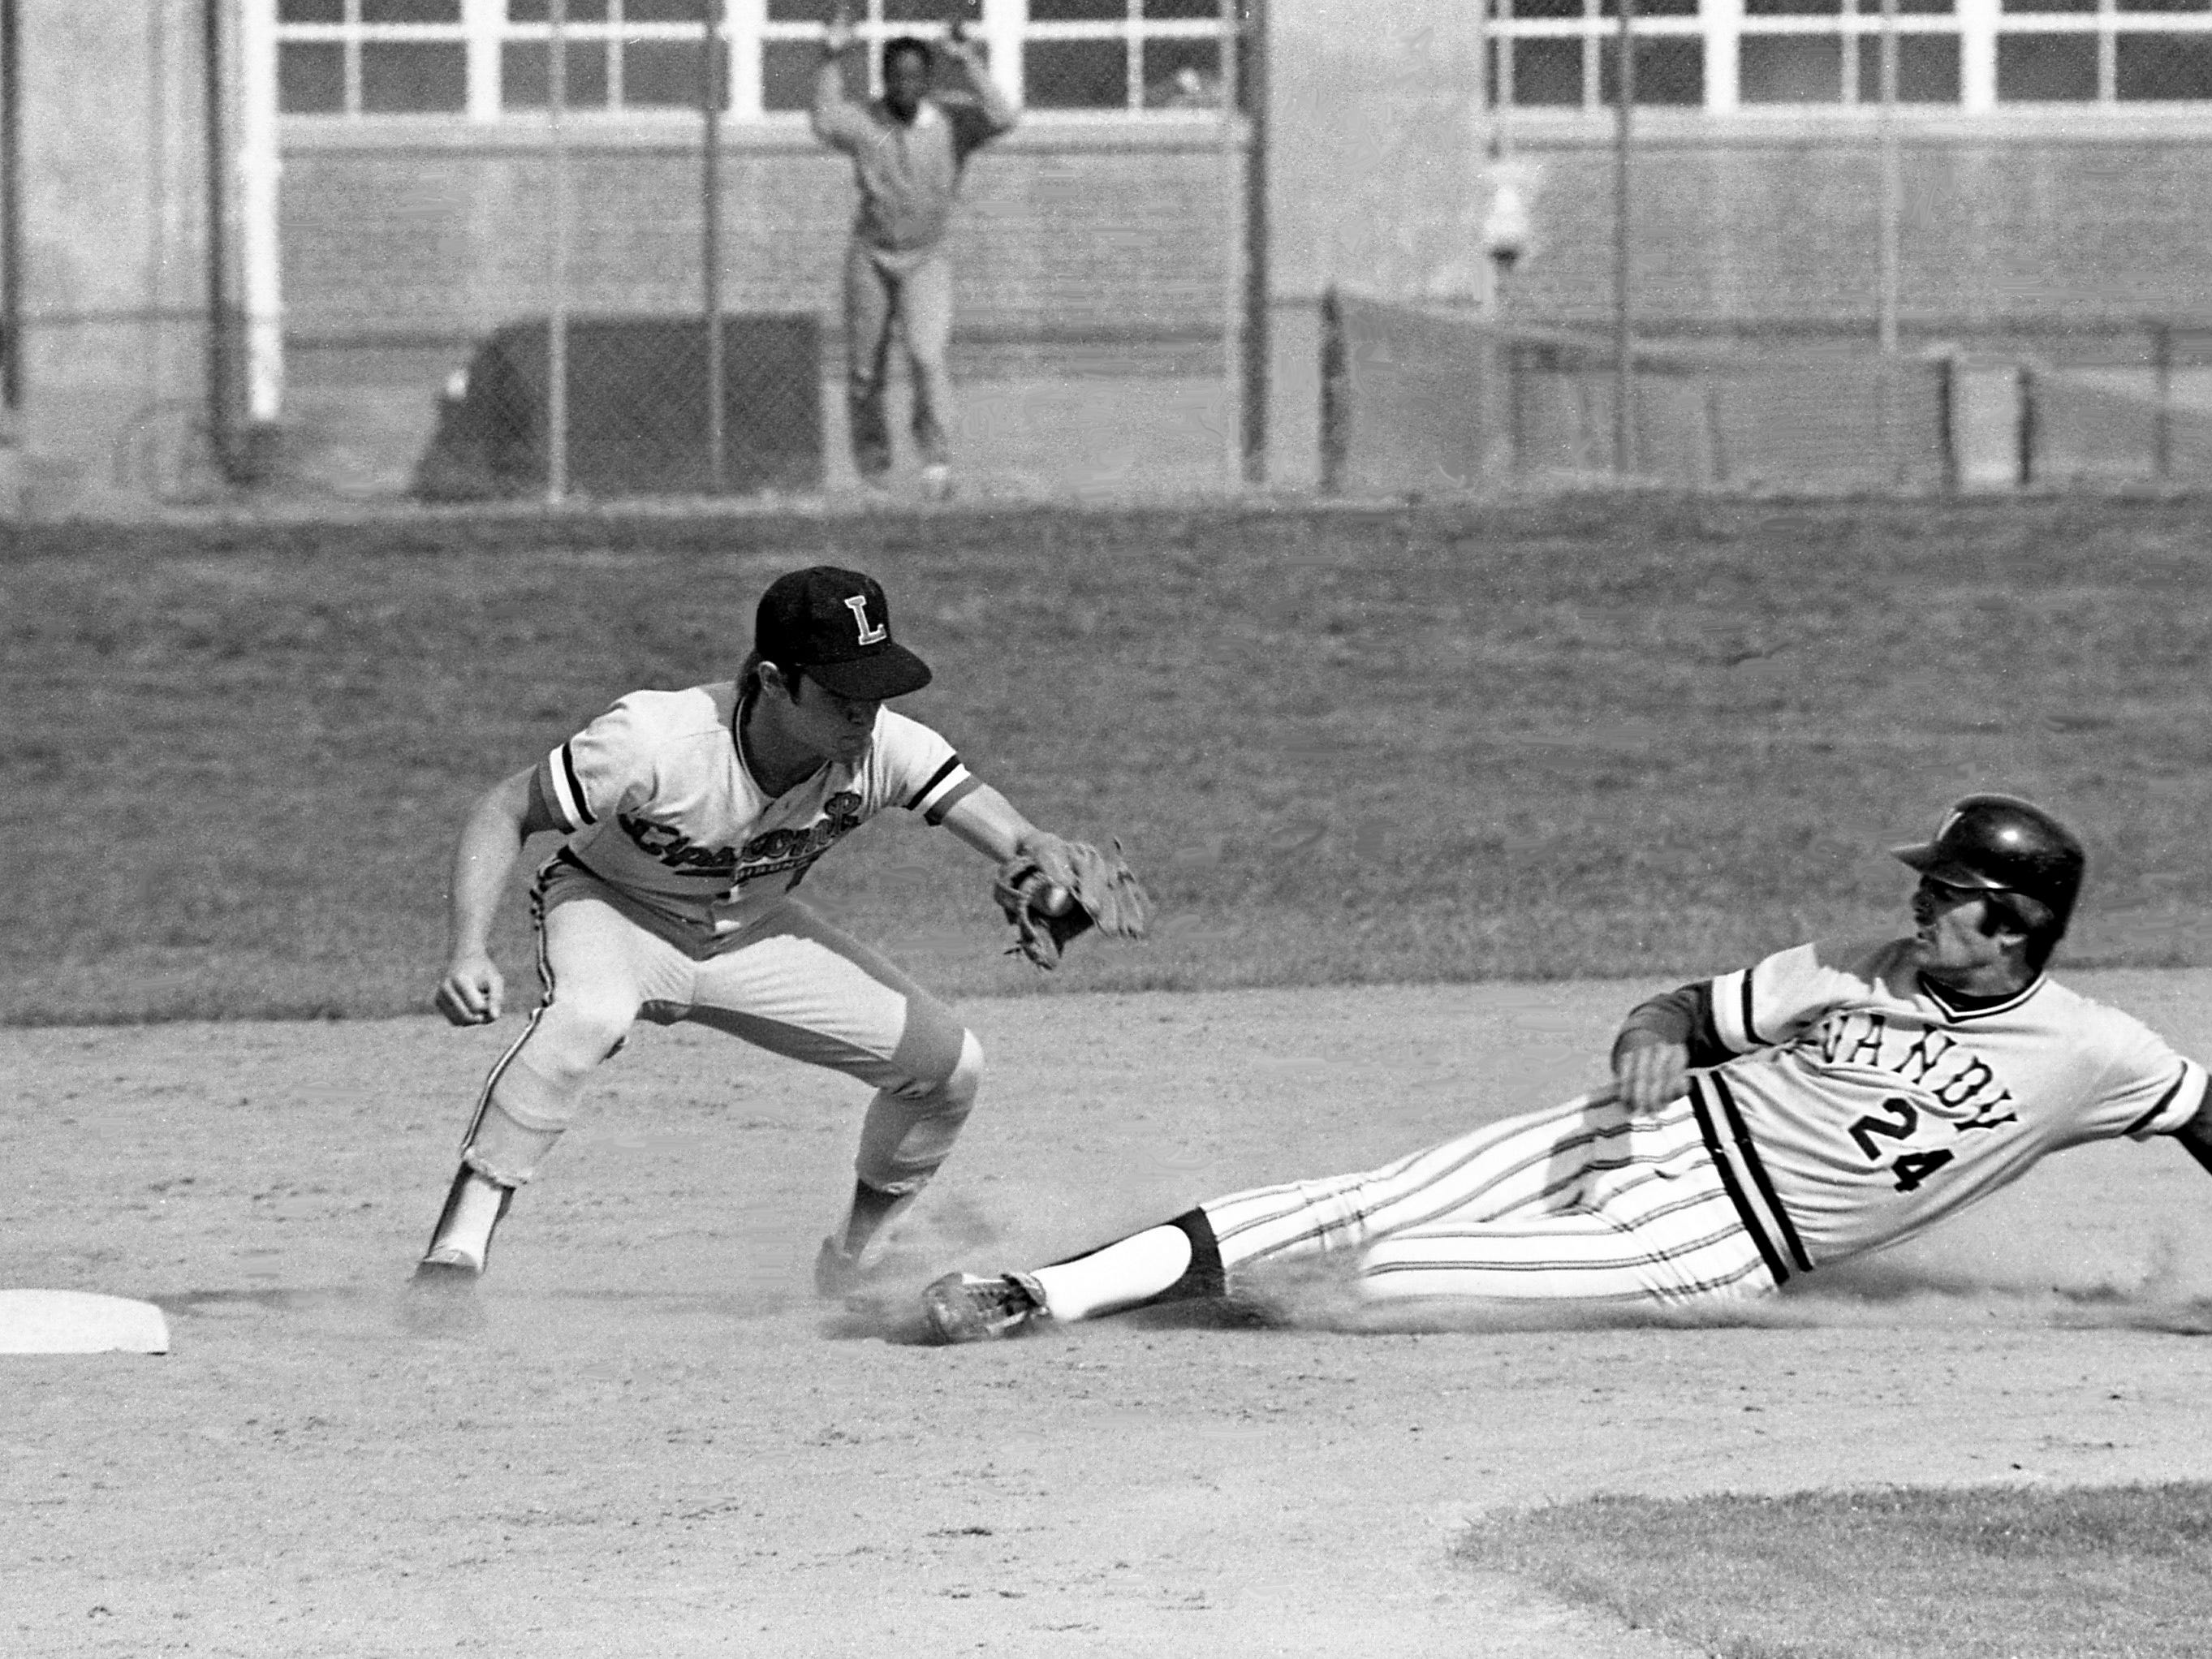 Lipscomb College second baseman Terry Moore, left, is ready to tag Vanderbilt University baserunner Mark Elliott out on a steal attempt to end the Commodores' third-inning rally. The Lipscomb machine rolled right over Vanderbilt 8-2 at their Onion Dell Field on April 19, 1979.